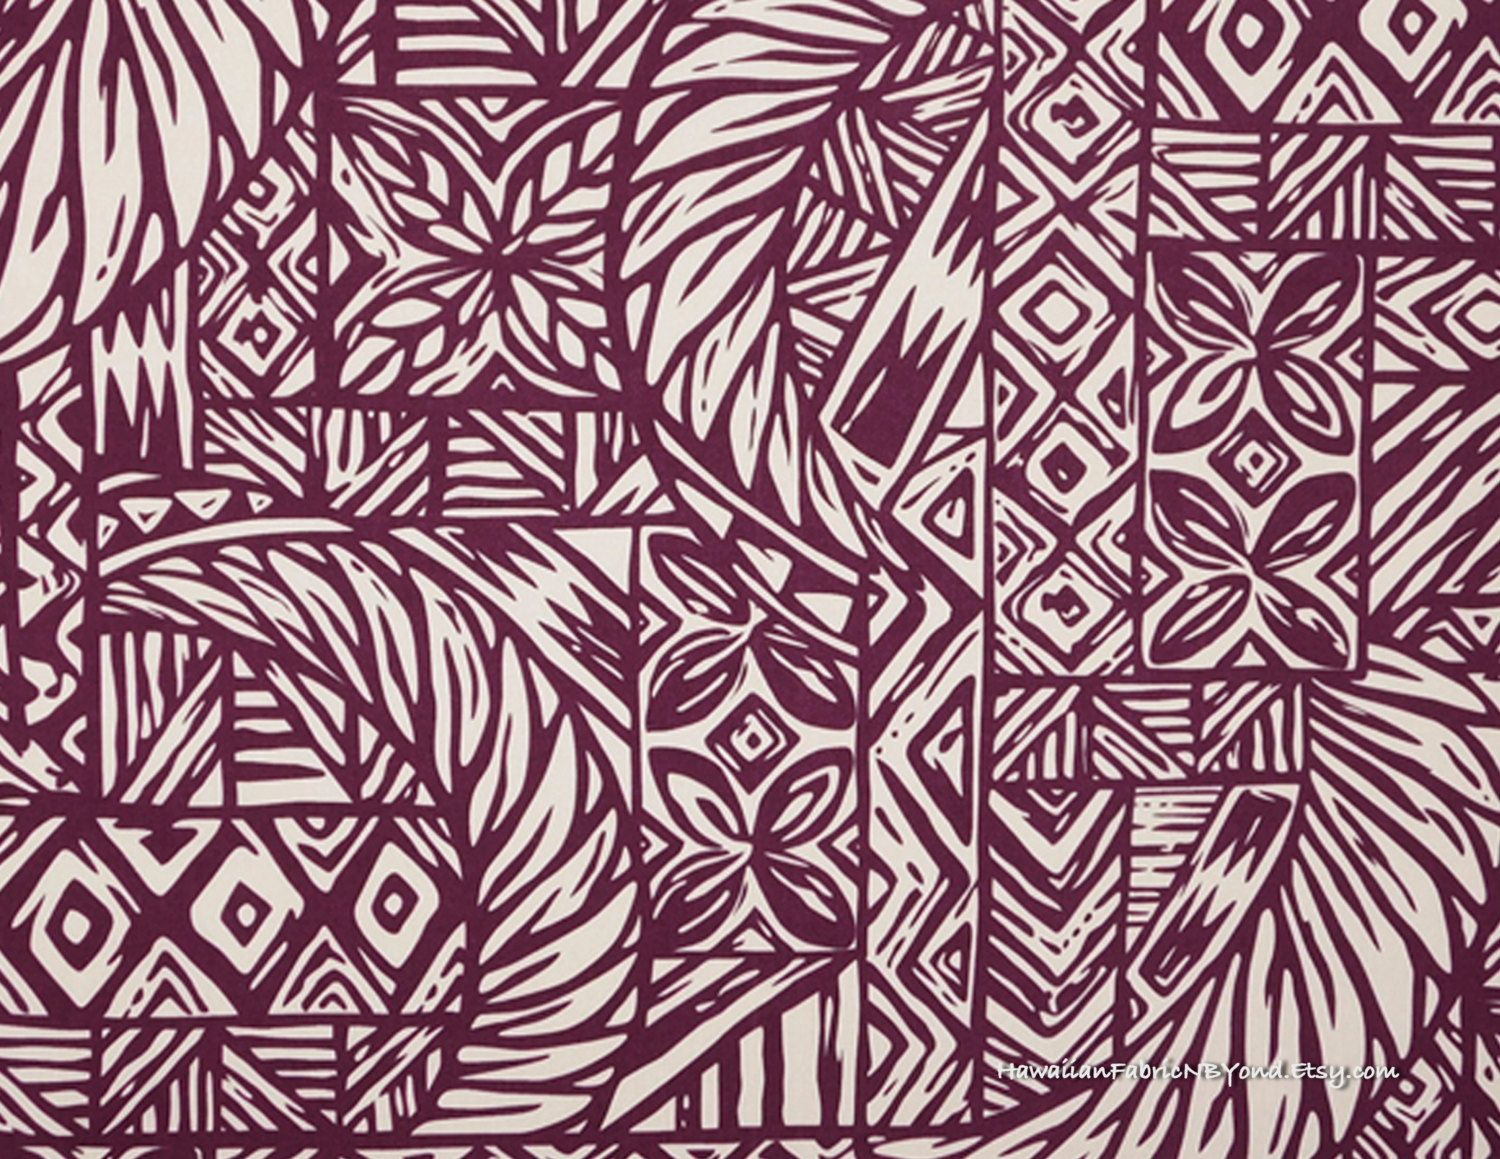 Lava lava Fabric: One of the best Lavalava fabric, Polynesian ... : tattoo quilt fabric - Adamdwight.com